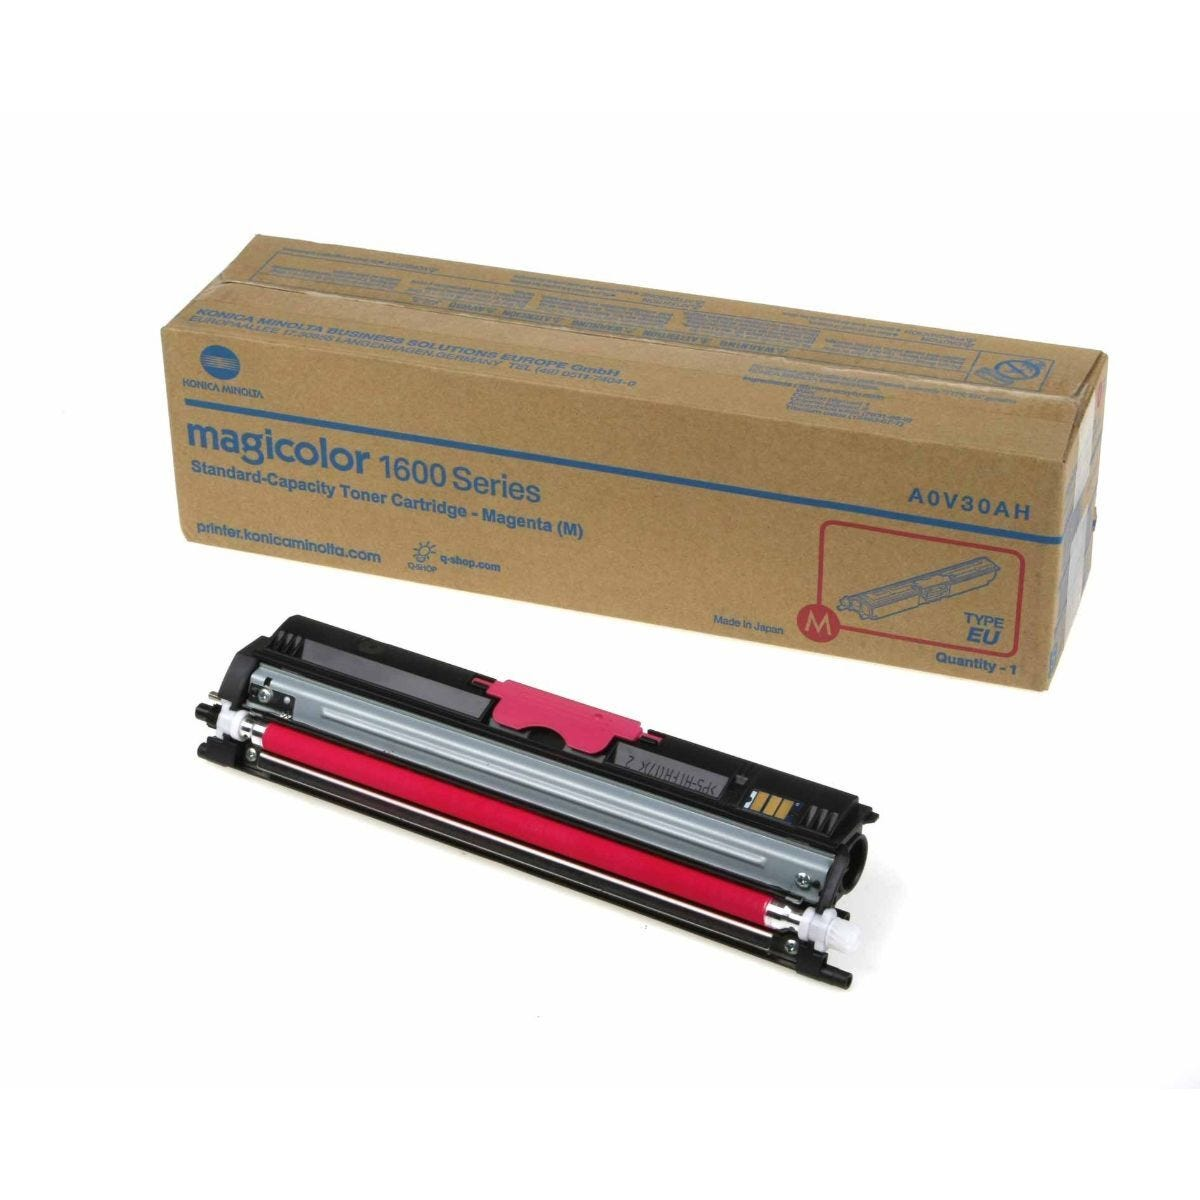 Konica Minolta A0V30AH Laser Printer Ink Toner Cartridge